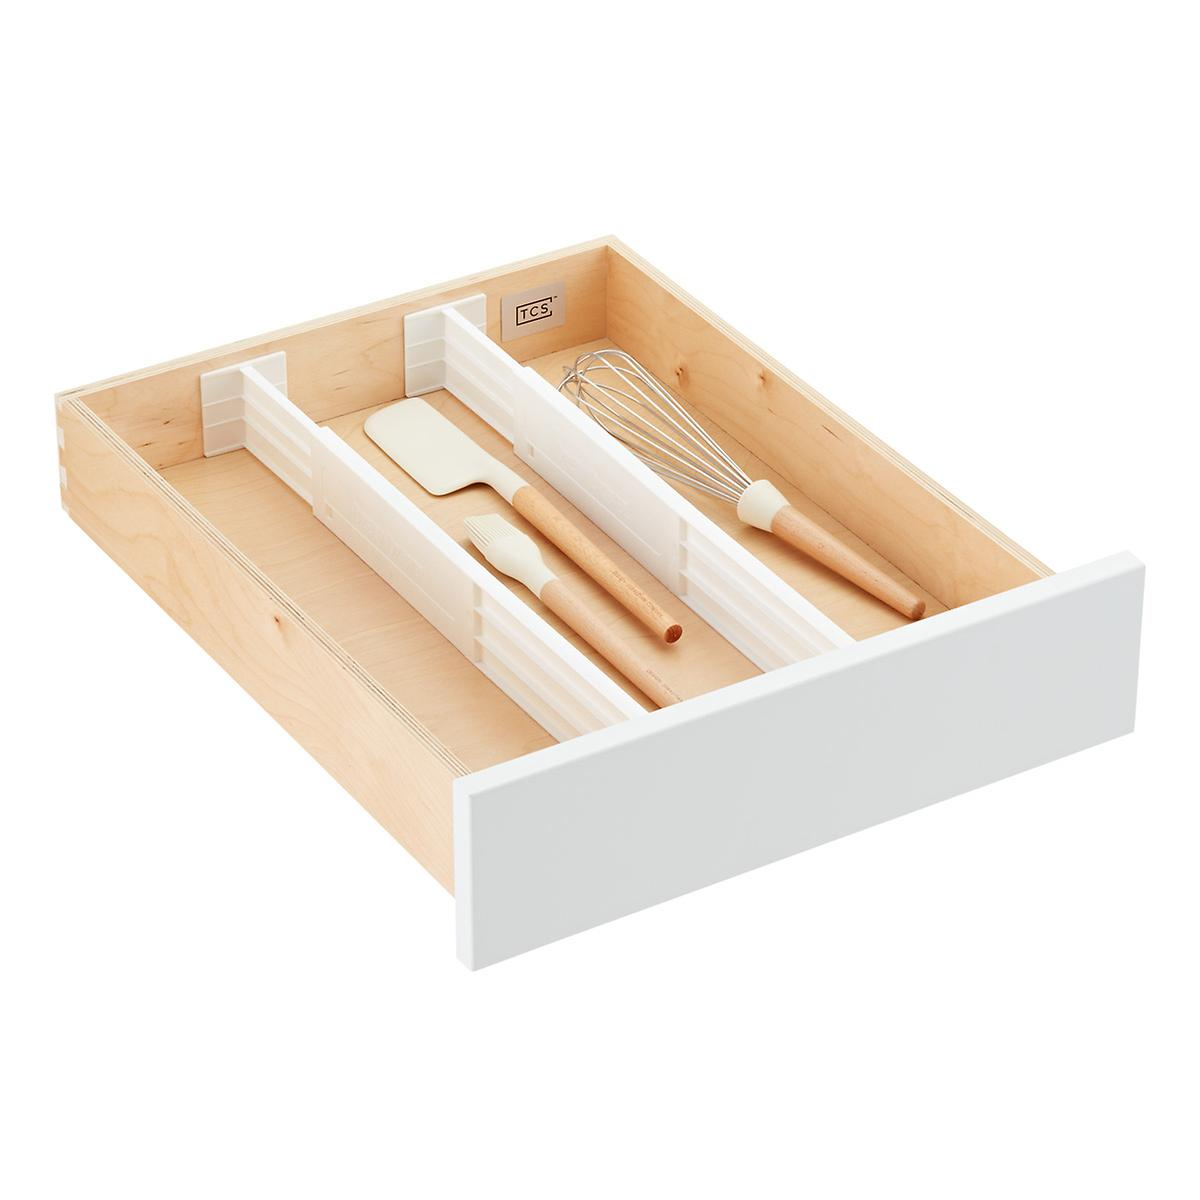 com dp set drawer organizer amazon piece flatware oceanstar bamboo expandable